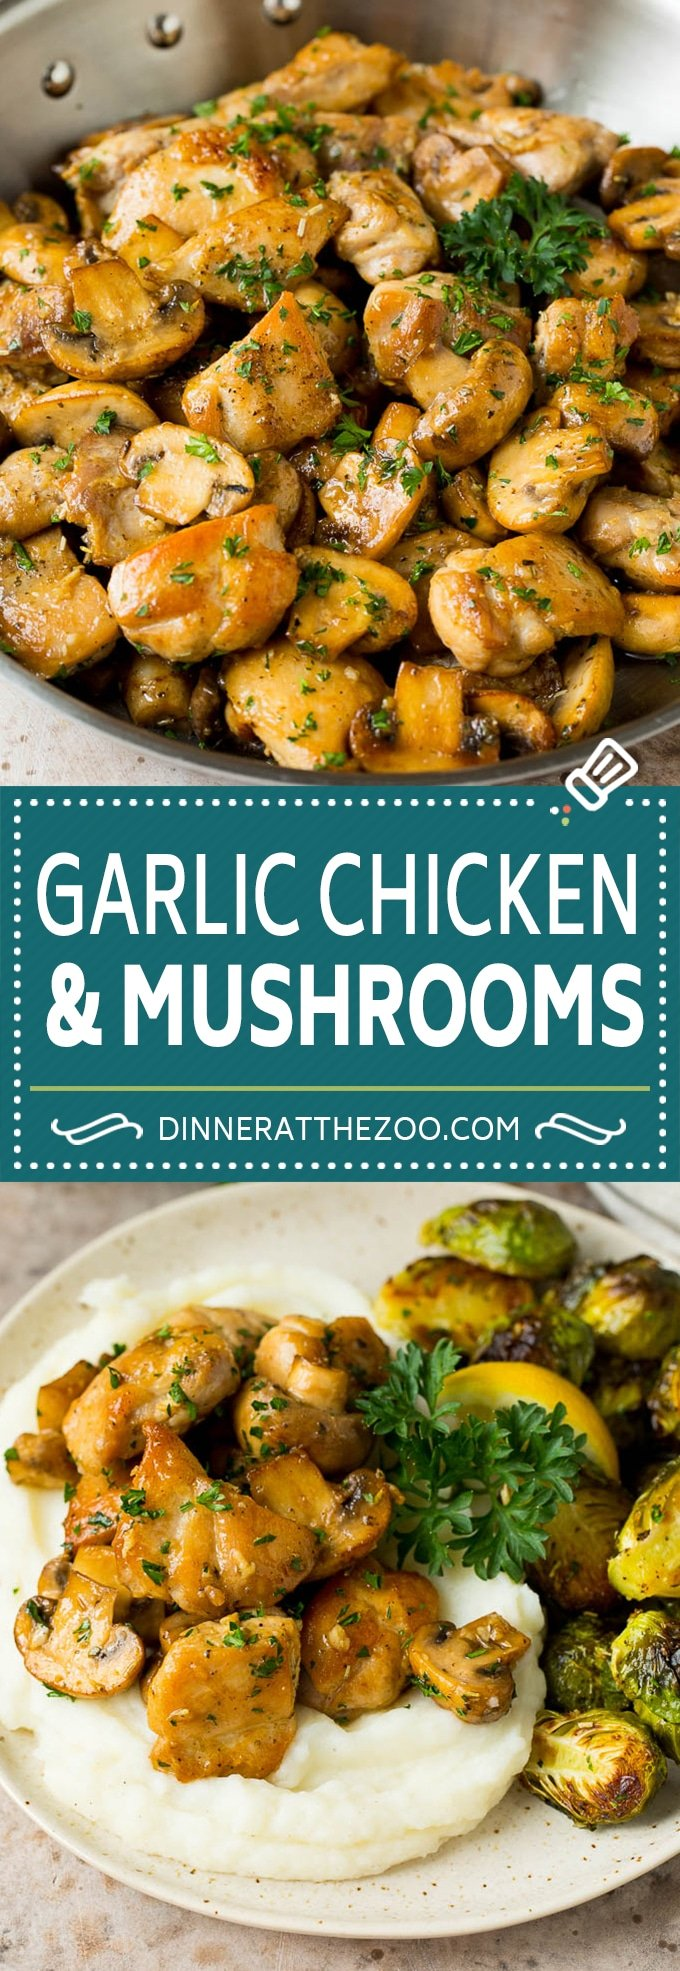 This garlic butter chicken recipe features seared chicken and sauteed mushrooms, all in a flavorful butter, garlic and herb sauce.